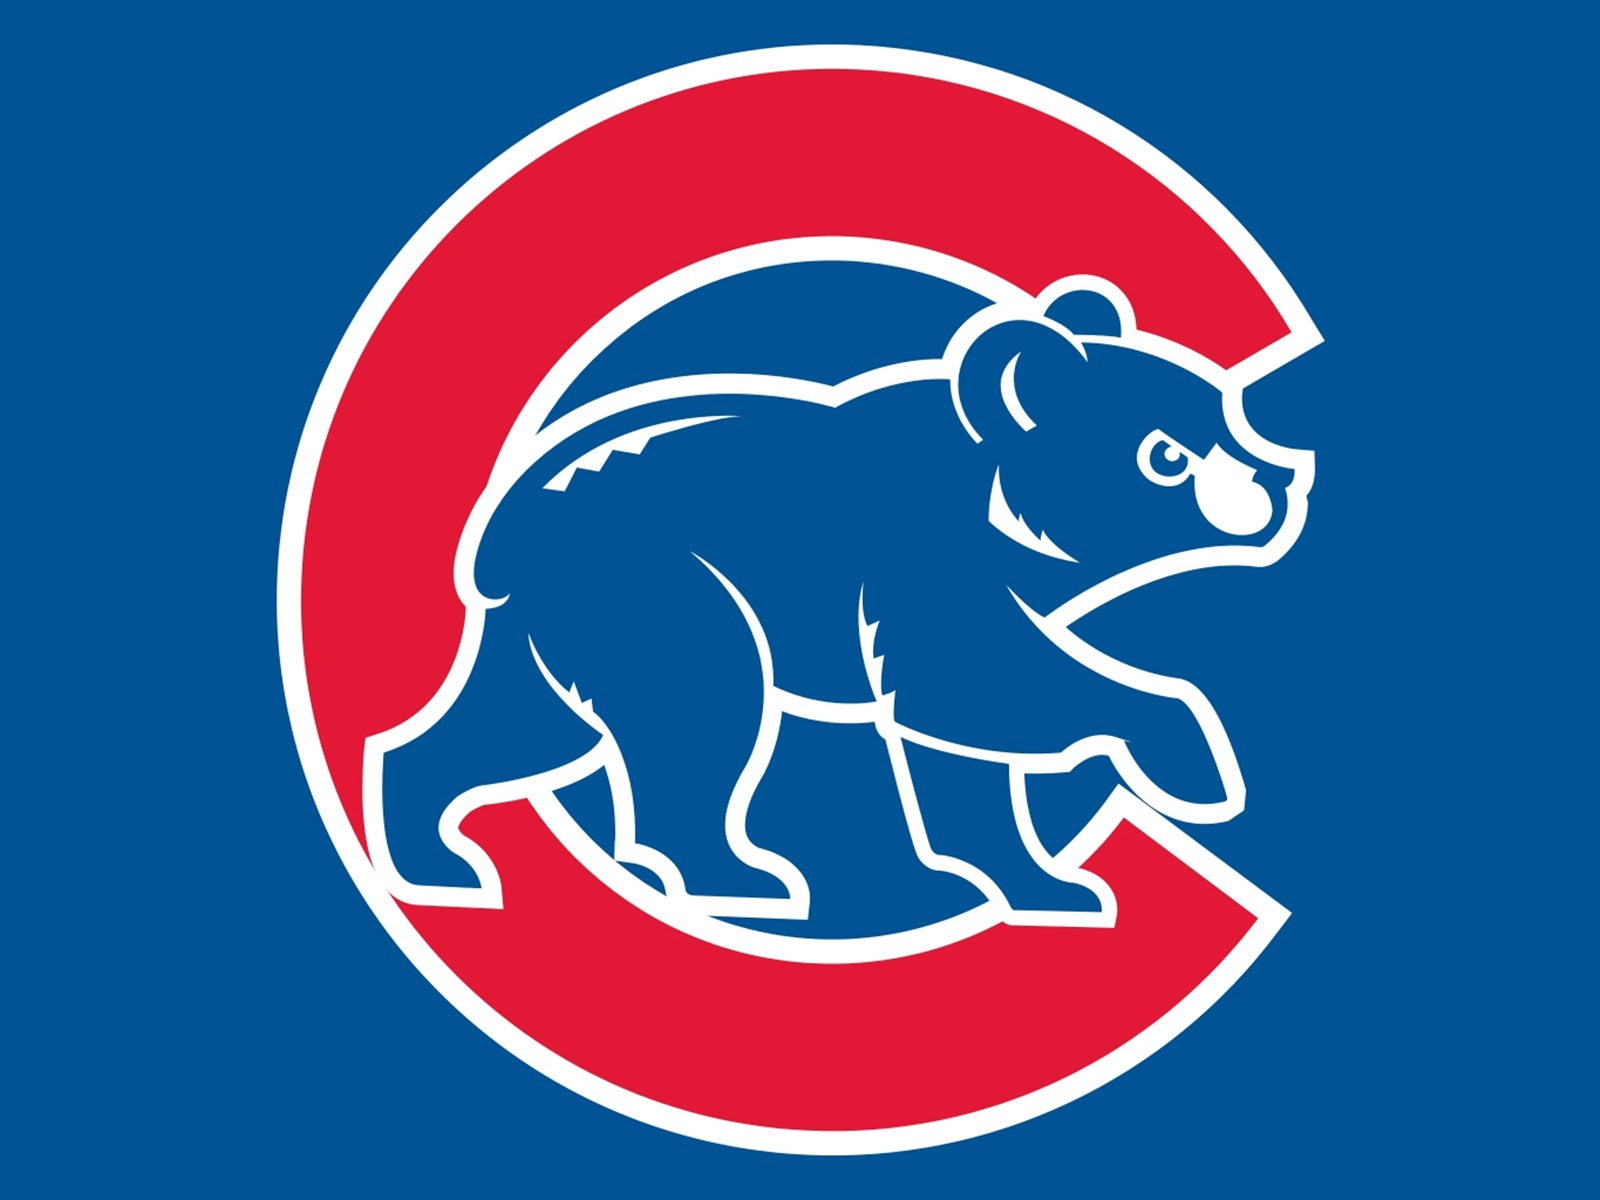 Chicago Cubs Wallpaper Hd: Chicago Cubs Logos